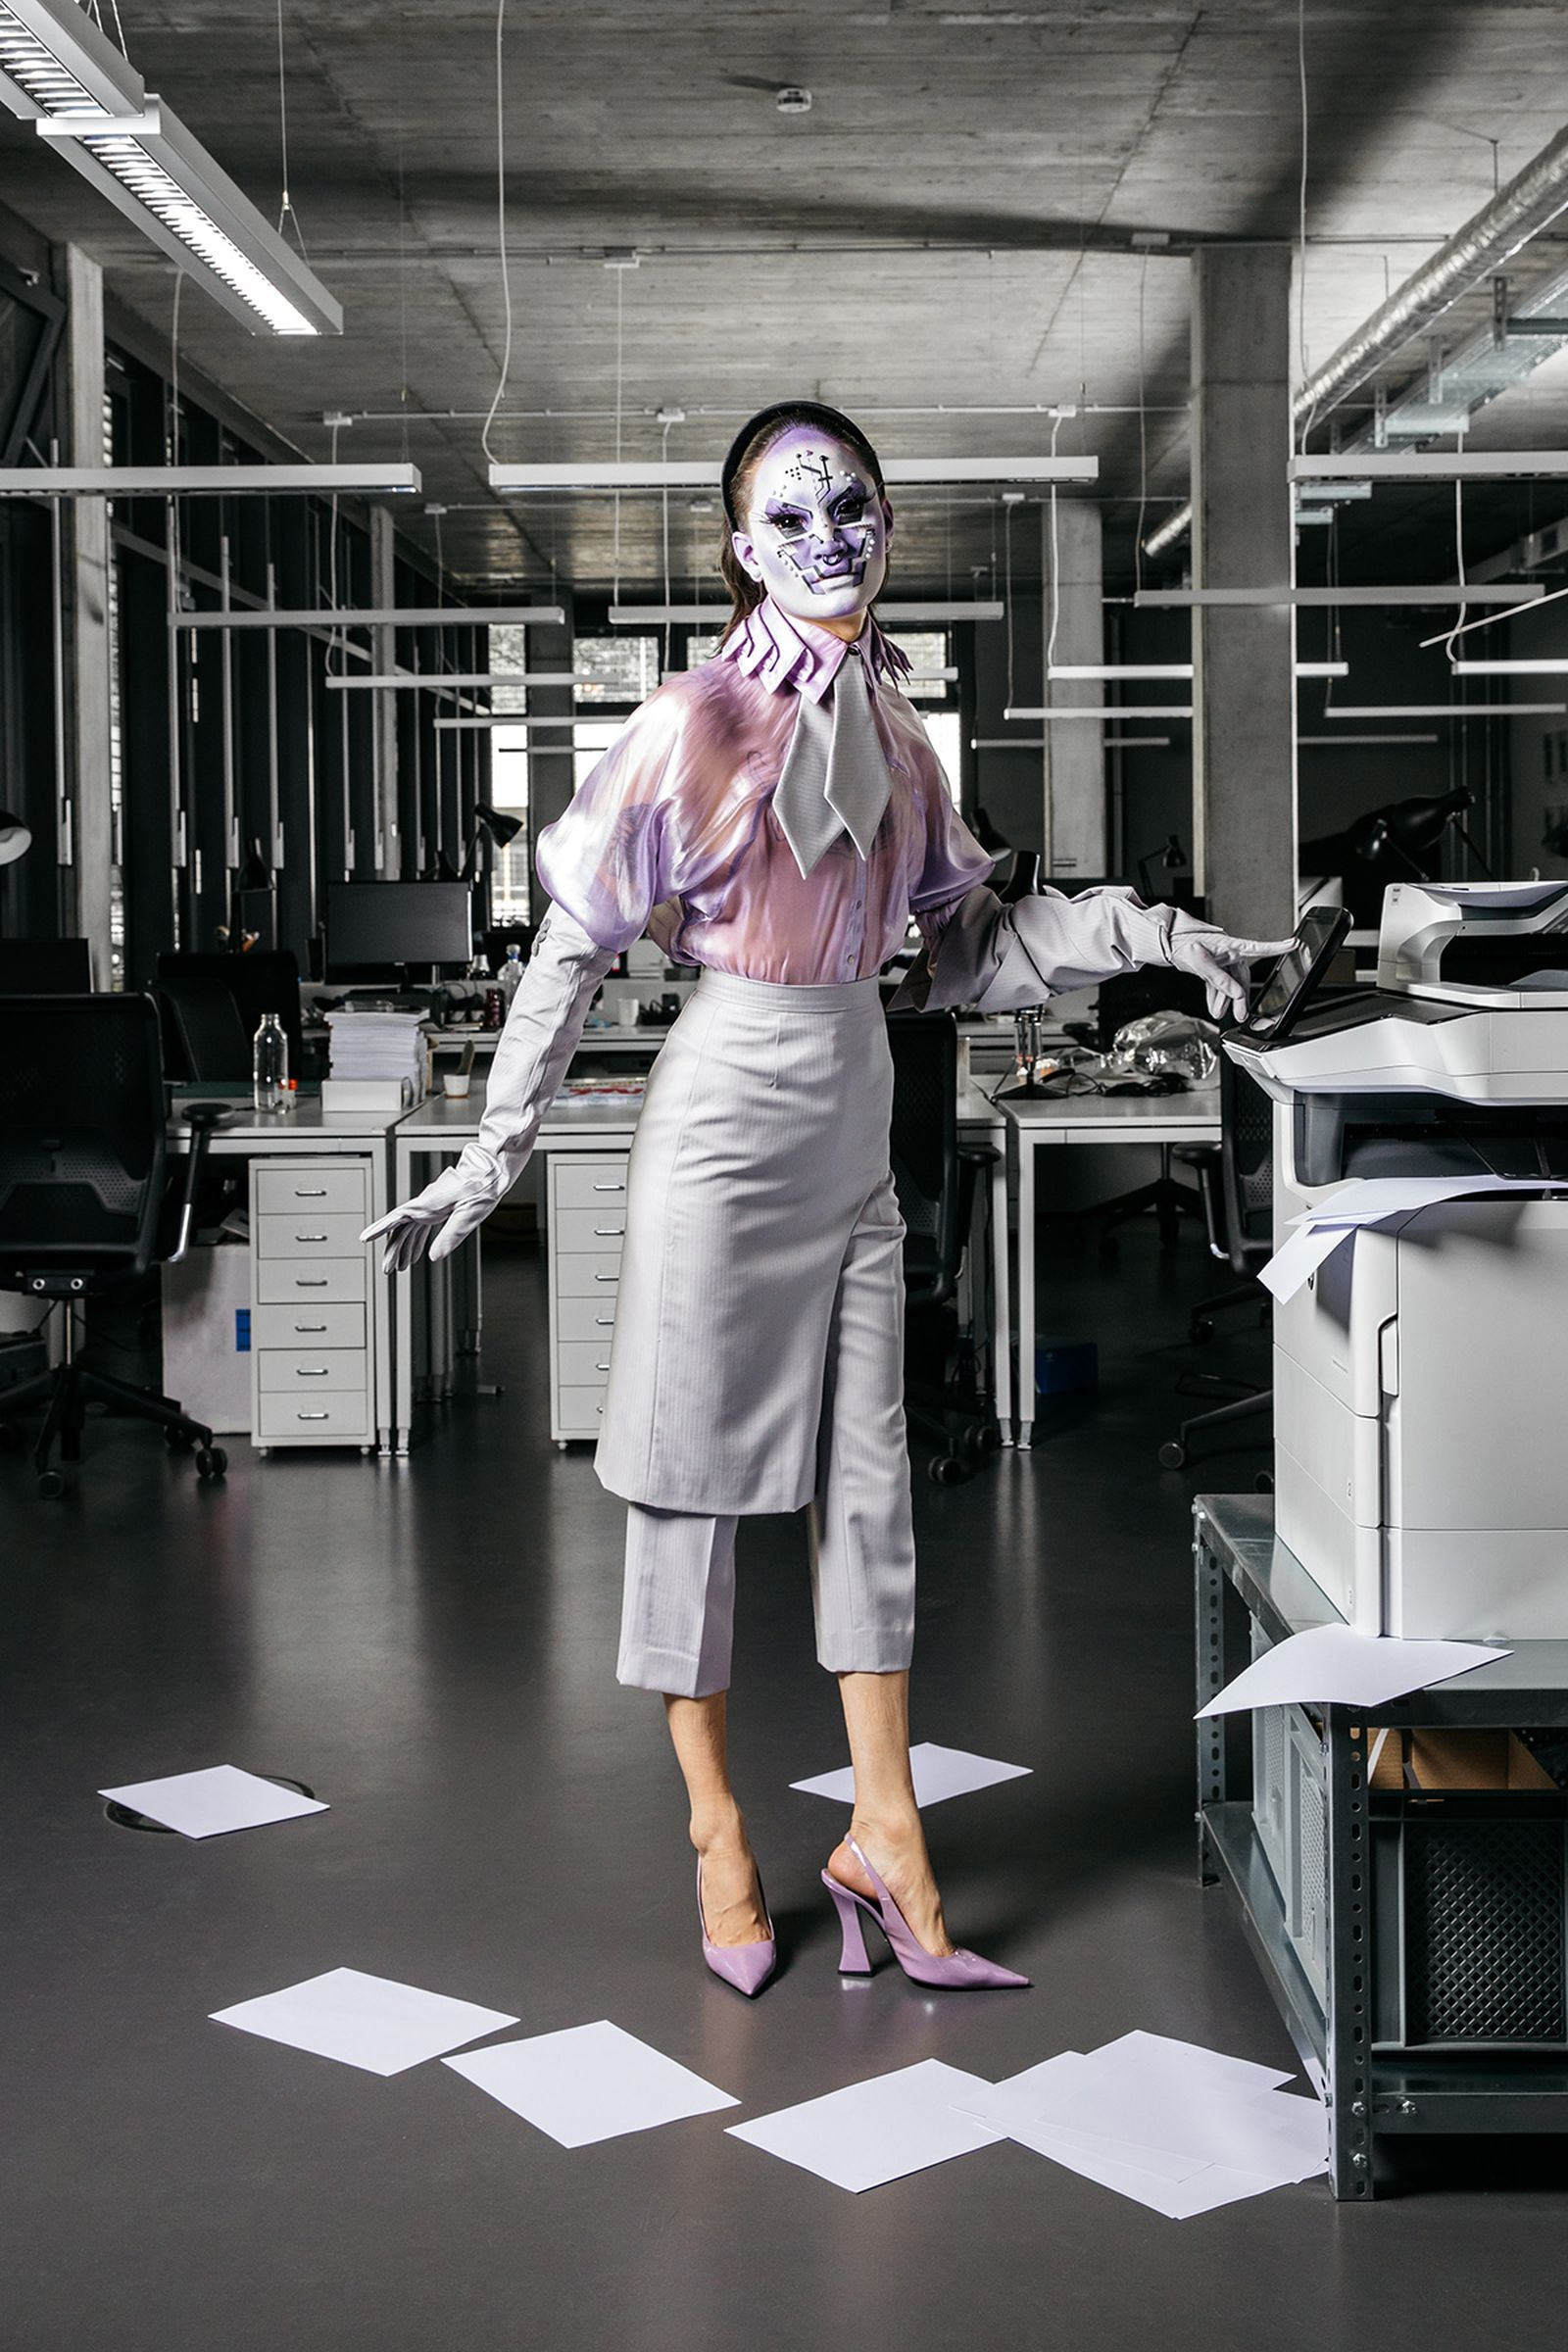 Garments: Catalogue Of Disguise, Tie: Hungry, Shoes: Prada